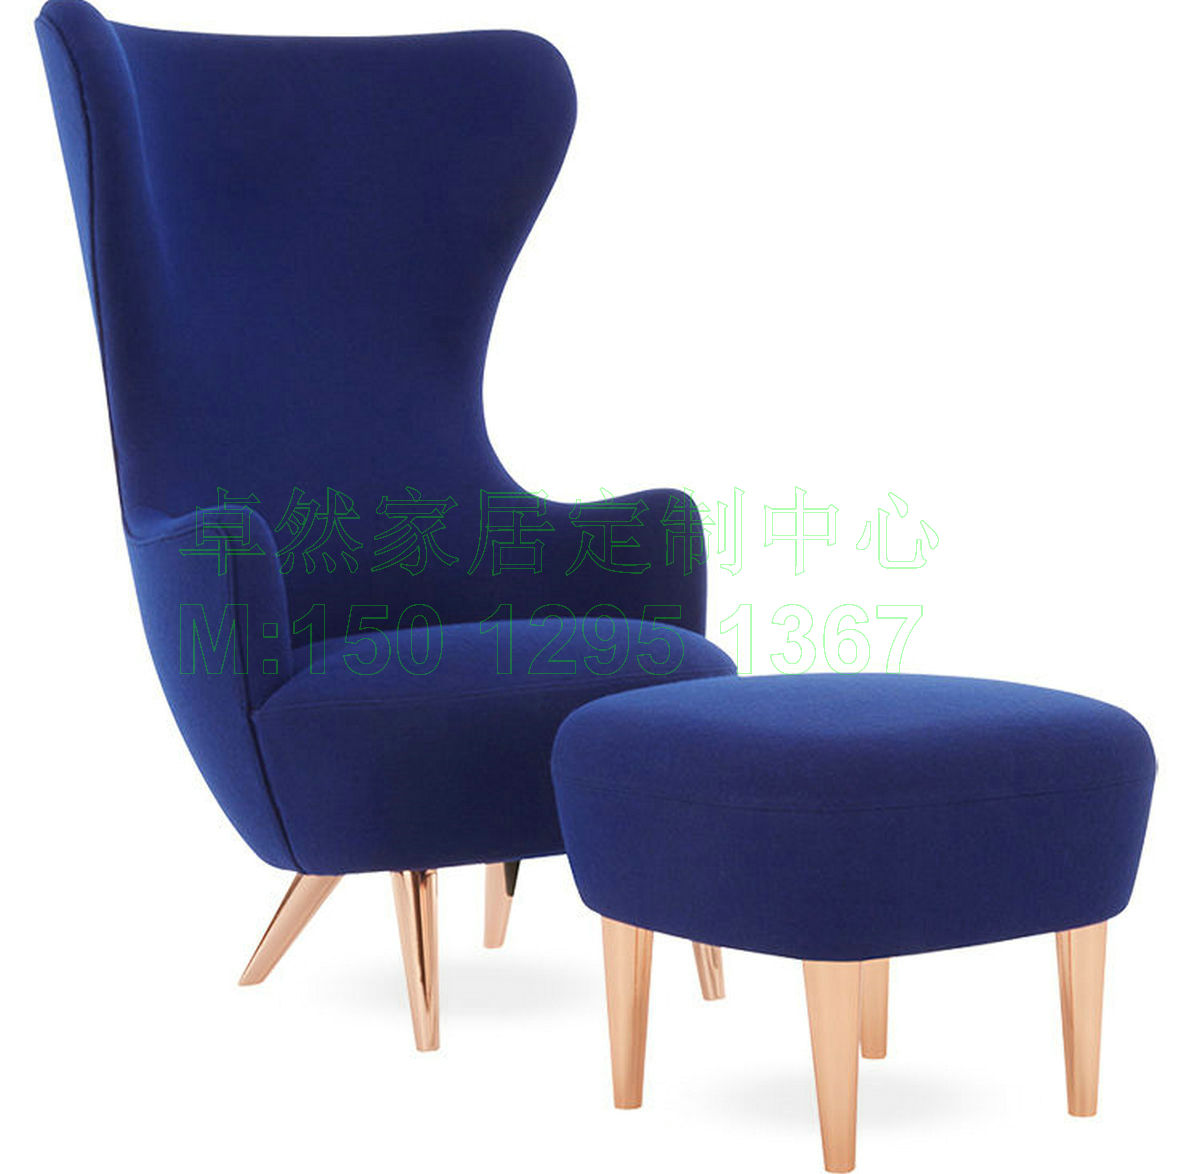 tom dixon wingback chair nordic solid wood high back armchair hotel model room reception chair